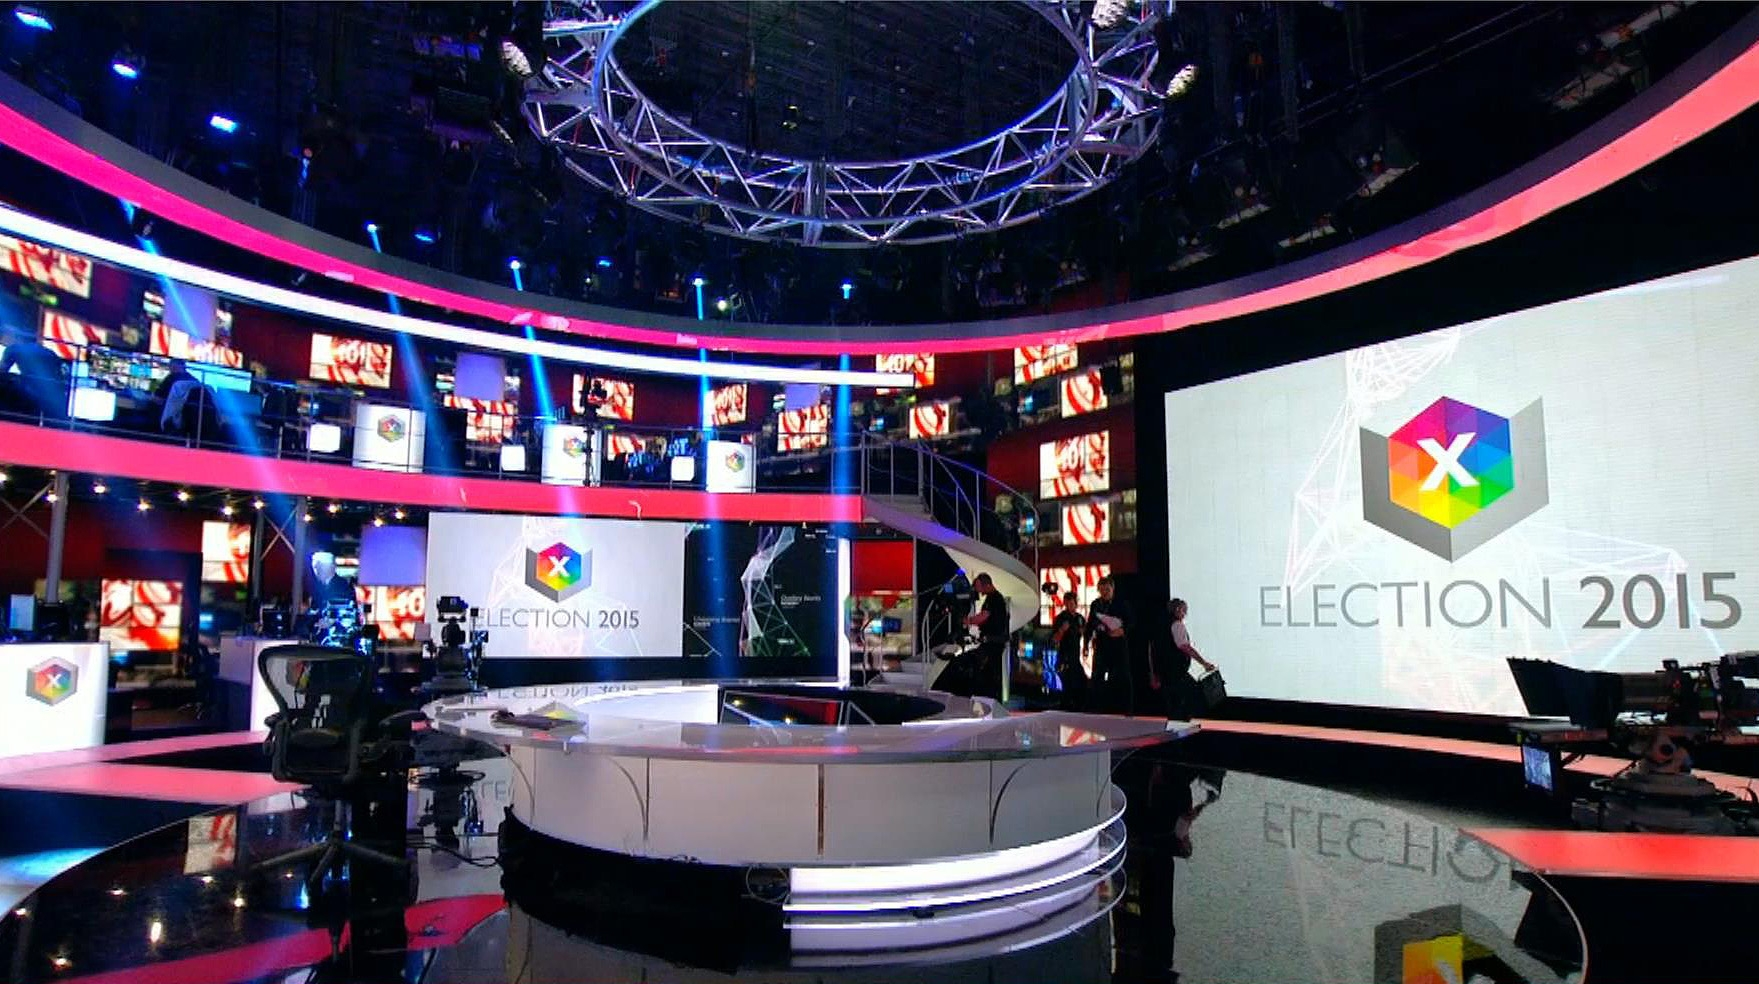 Fifth image of Election Design Gallery with BBC Election 2015 Broadcast Set Design Gallery